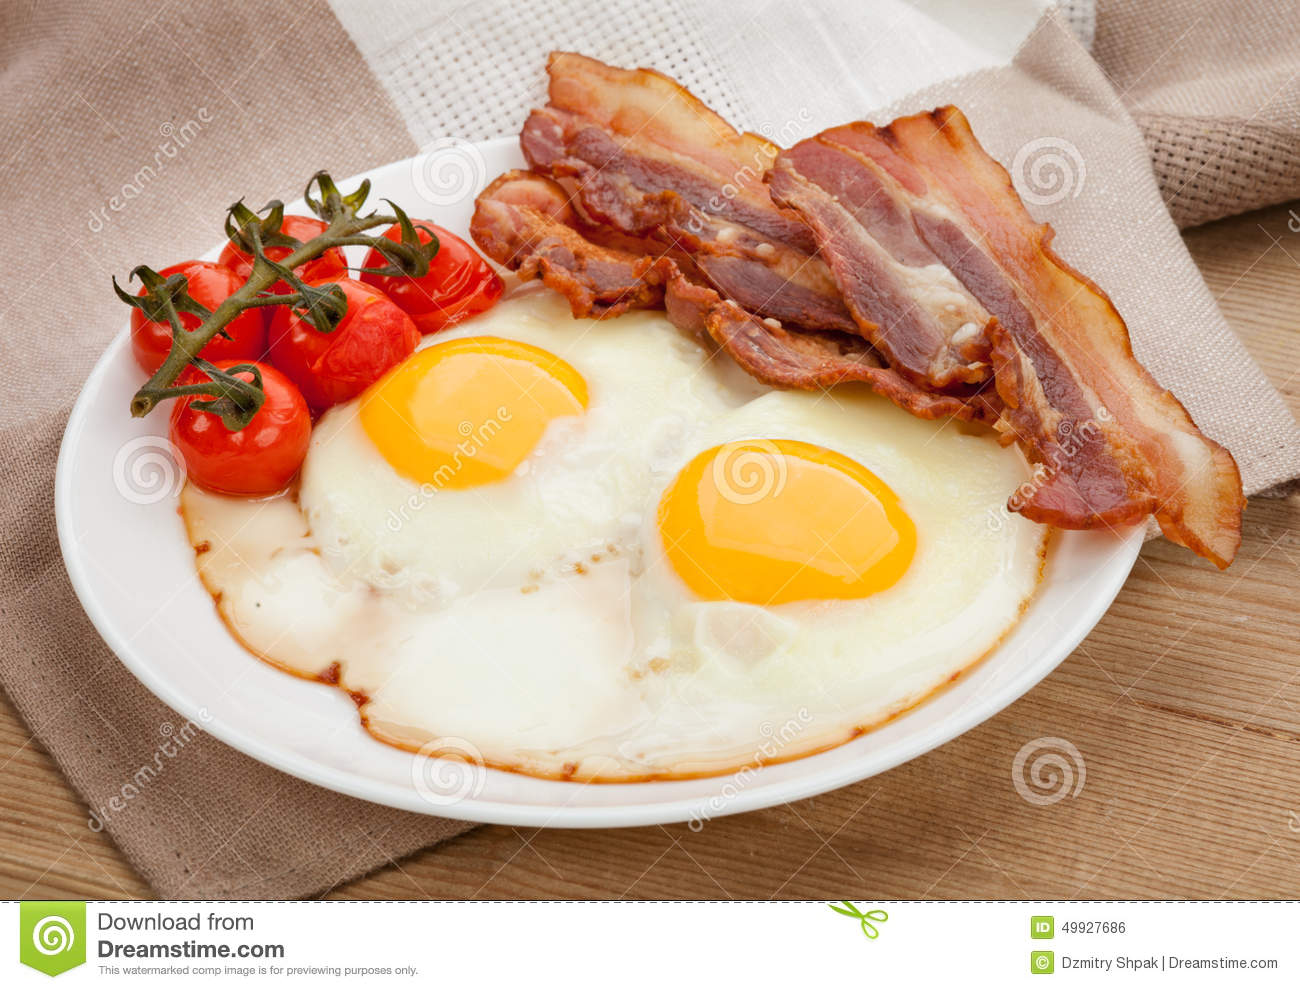 Plate With Fried Eggs, Bacon On Board Stock Photo - Image ...  |Fried Eggs On A Plate